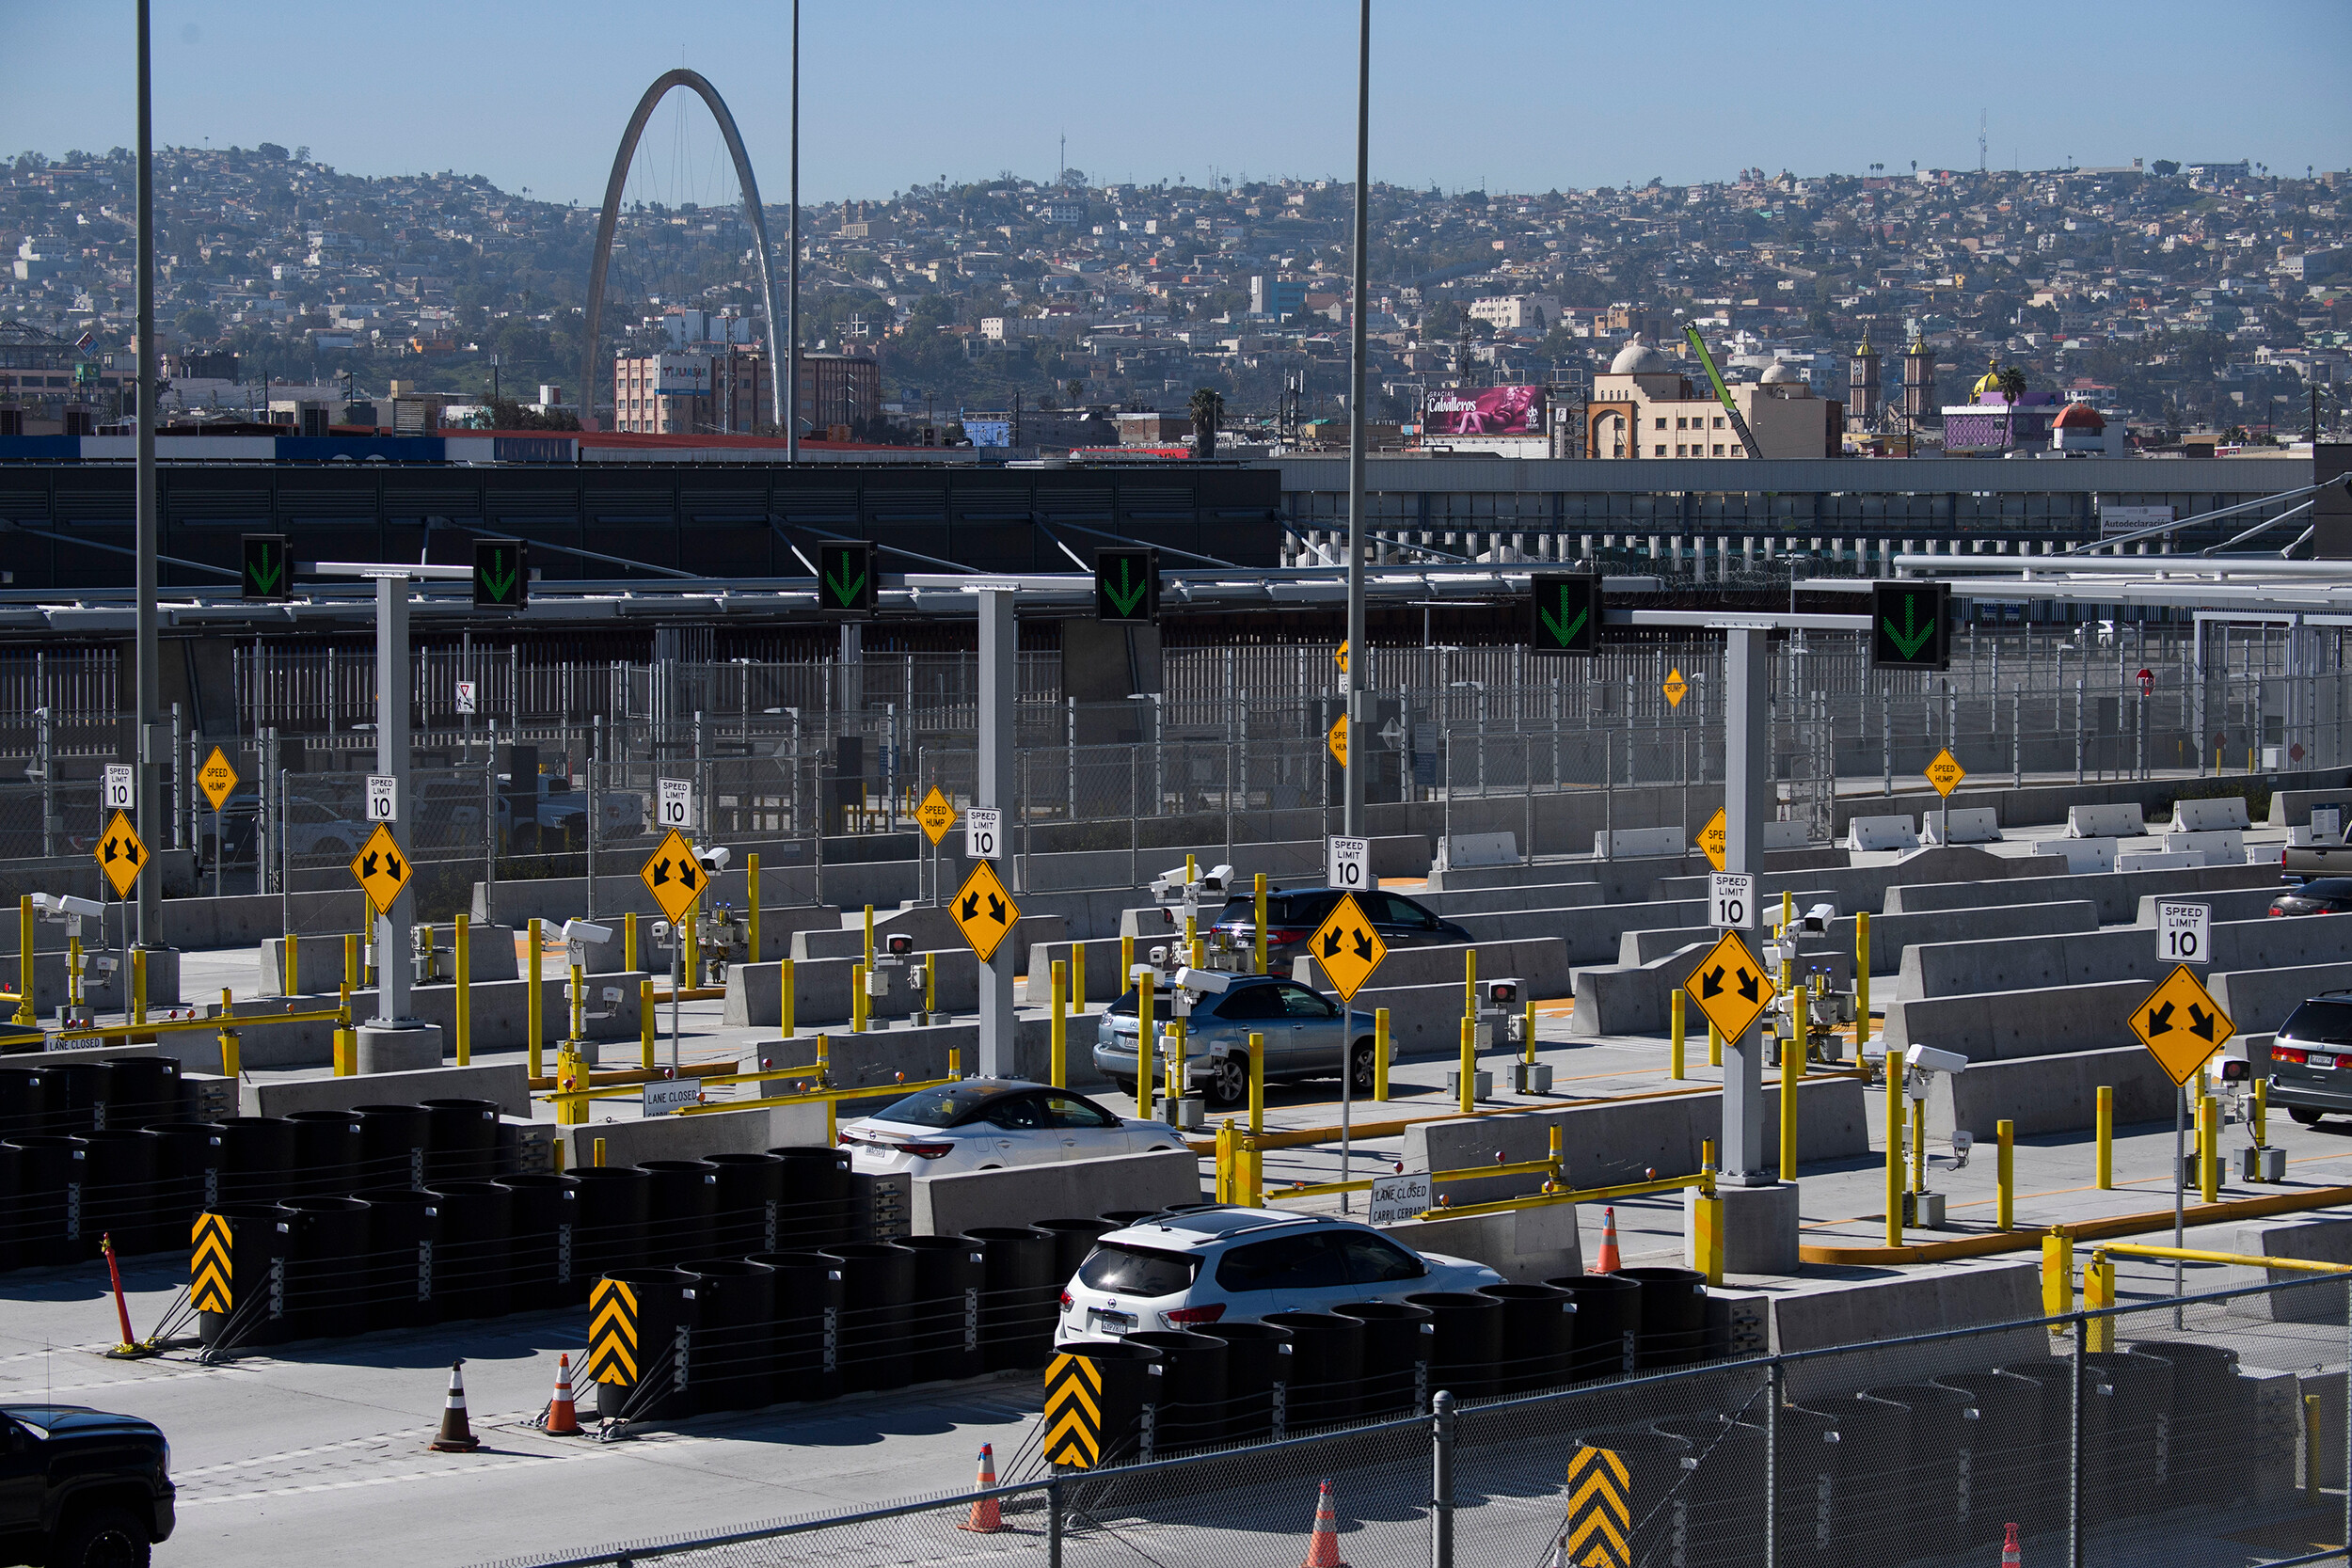 Pressure mounts on Biden administration to lift restrictions on US borders